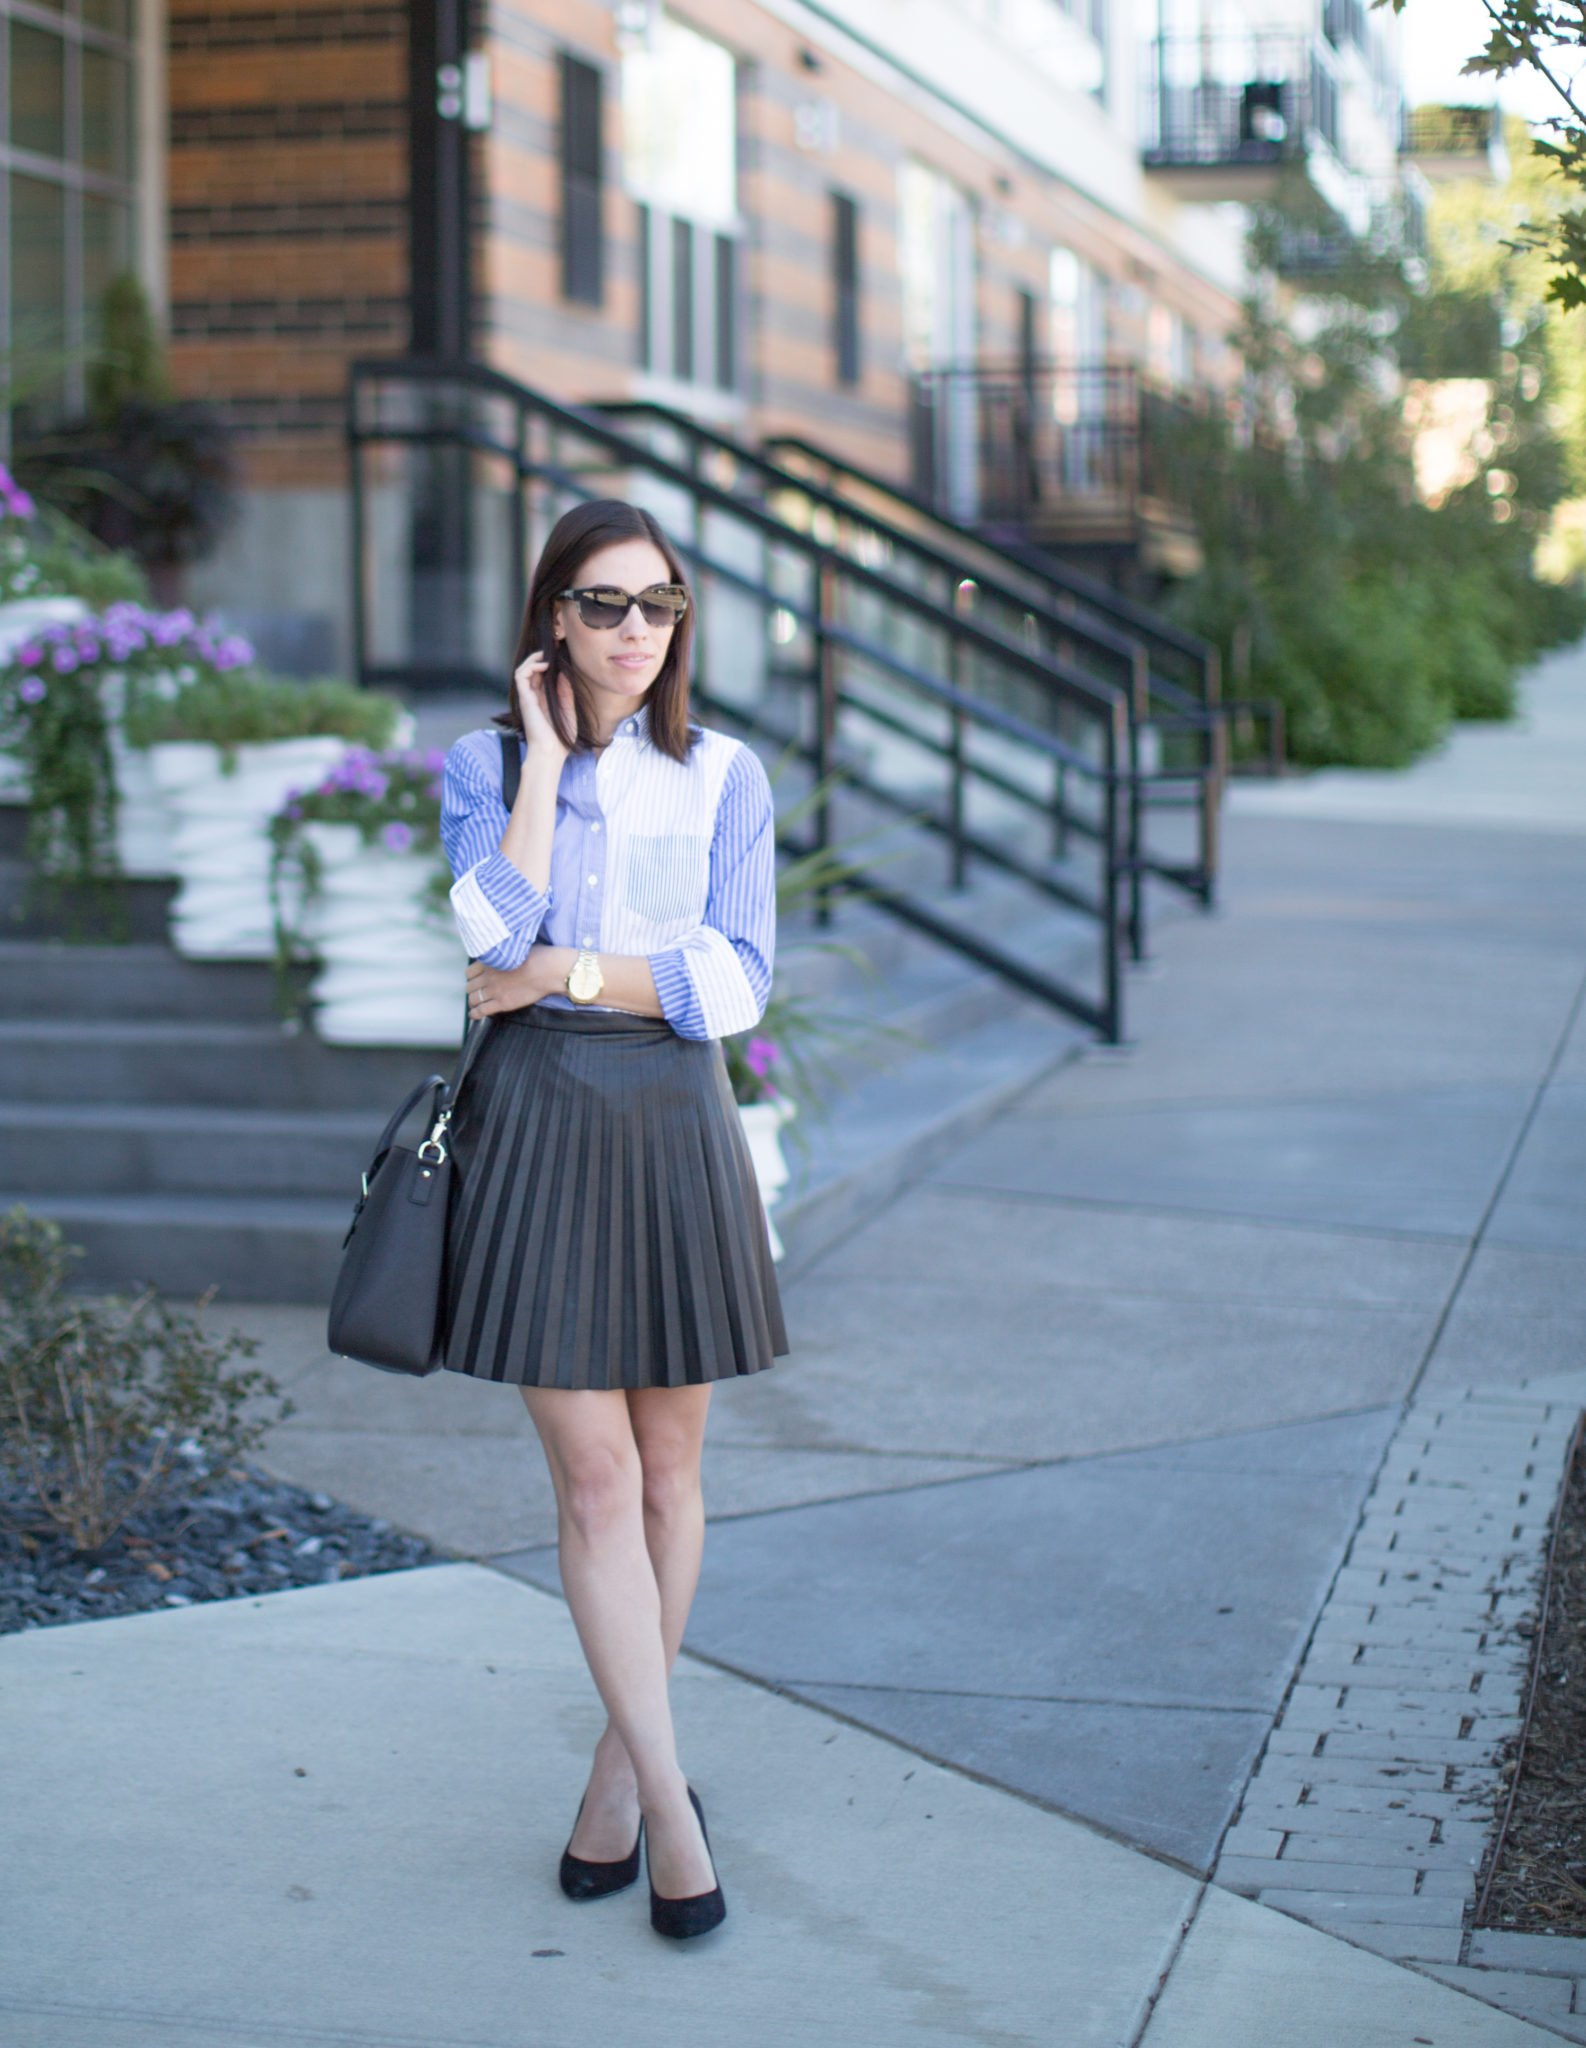 jcrew tuxedo button up blouse pleated leather skirt | J Crew tuxedo shirt styled by top US fashion blog, Wellesley. King: image of a woman wearing a J Crew tuxedo shirt, J Crew pleated mini skirt, Kate Spade cat eye sunglasses and Kate Spade leather satchel